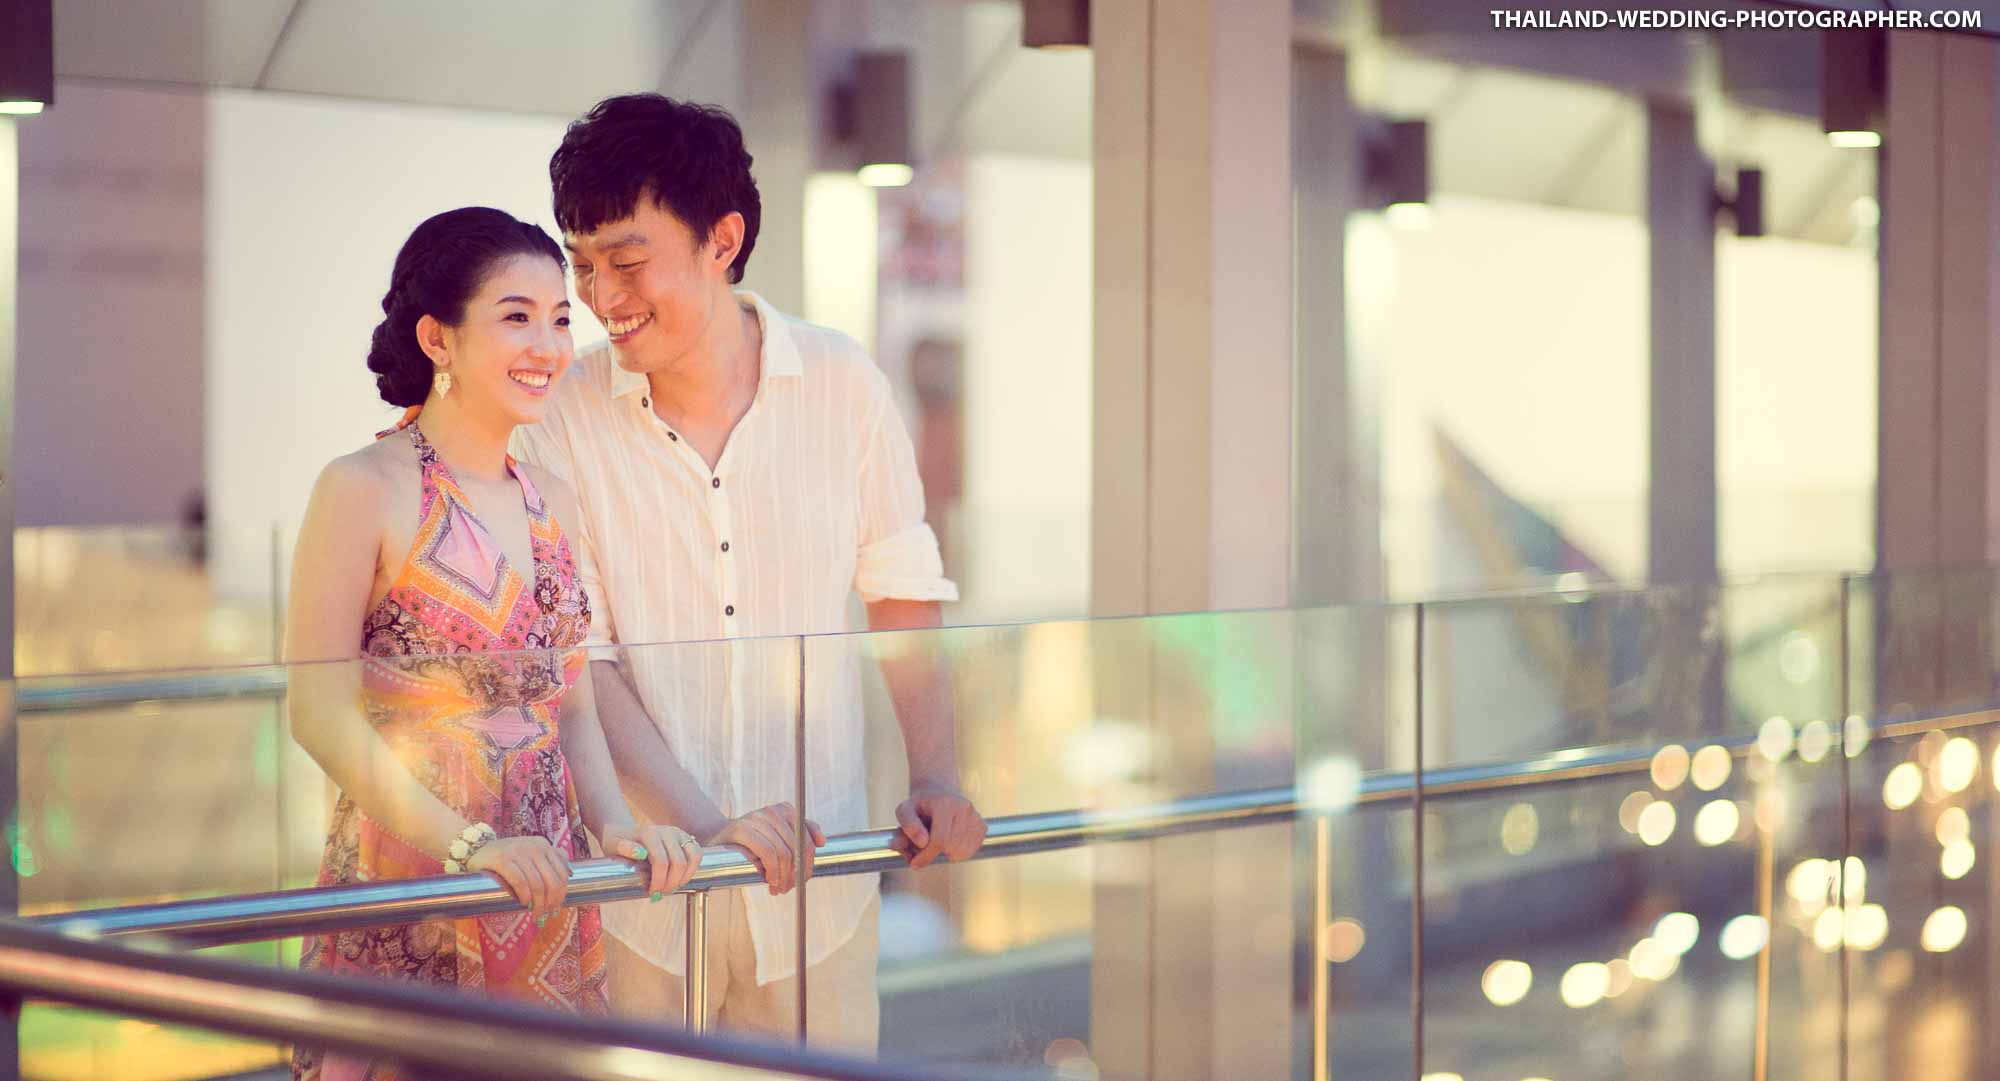 Guan Shan & Xie Pre-Wedding in Bangkok